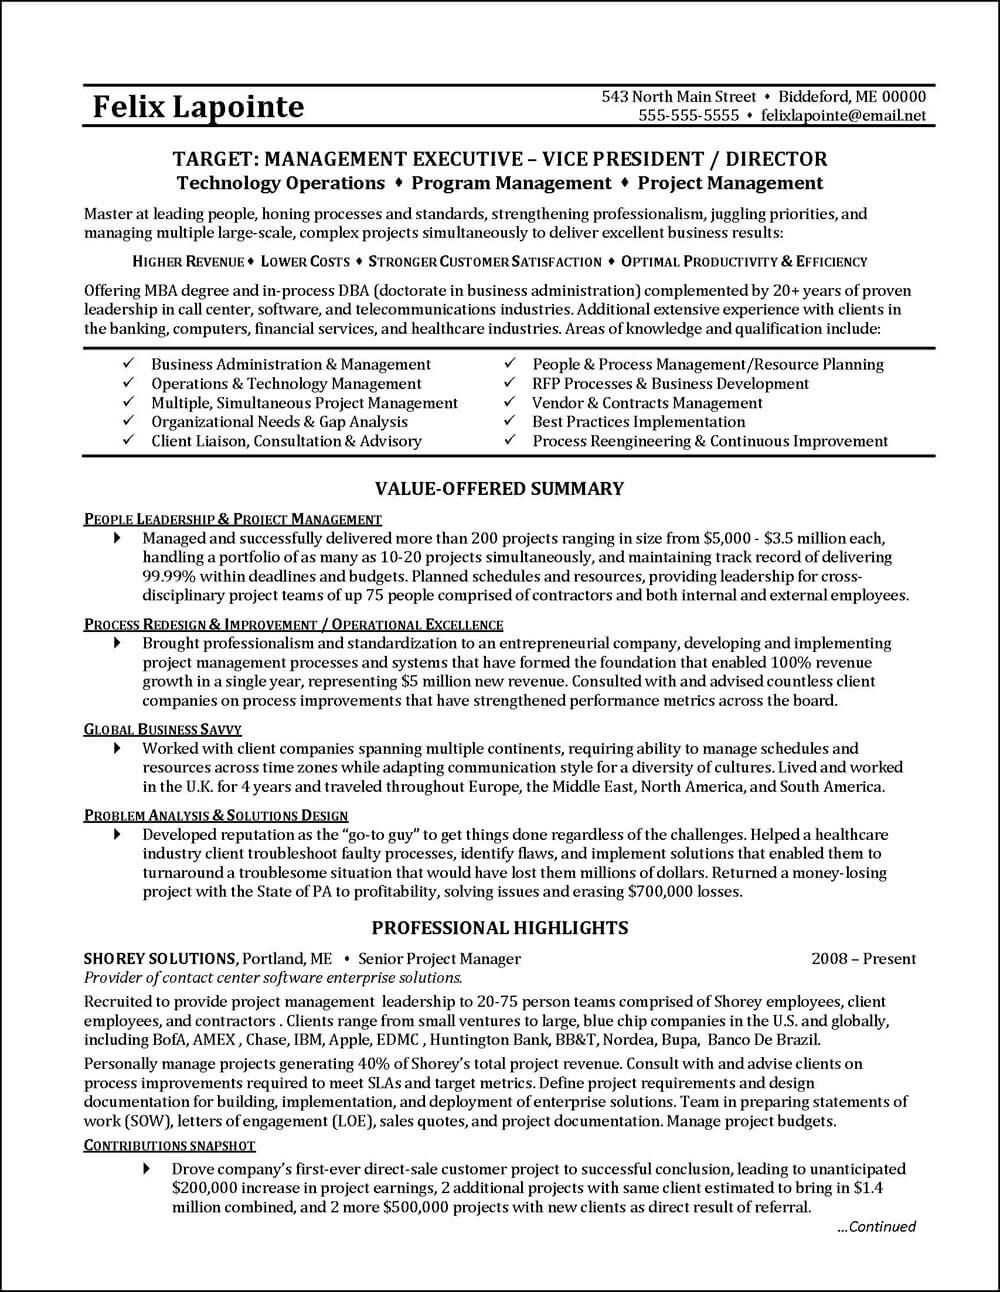 this c level executive resume was professionally written for a